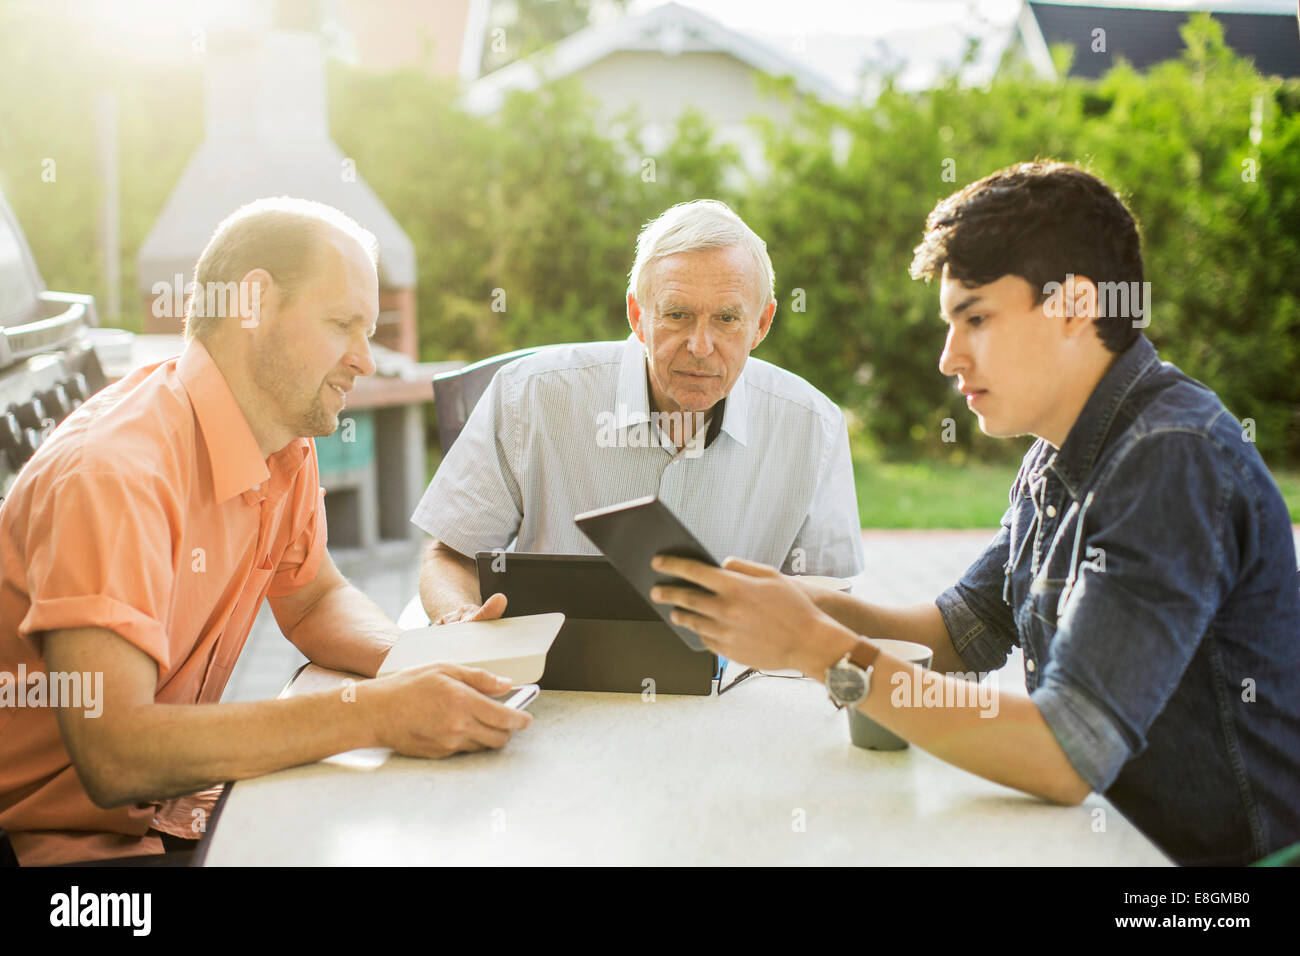 Three generation males using technologies at table in yard - Stock Image